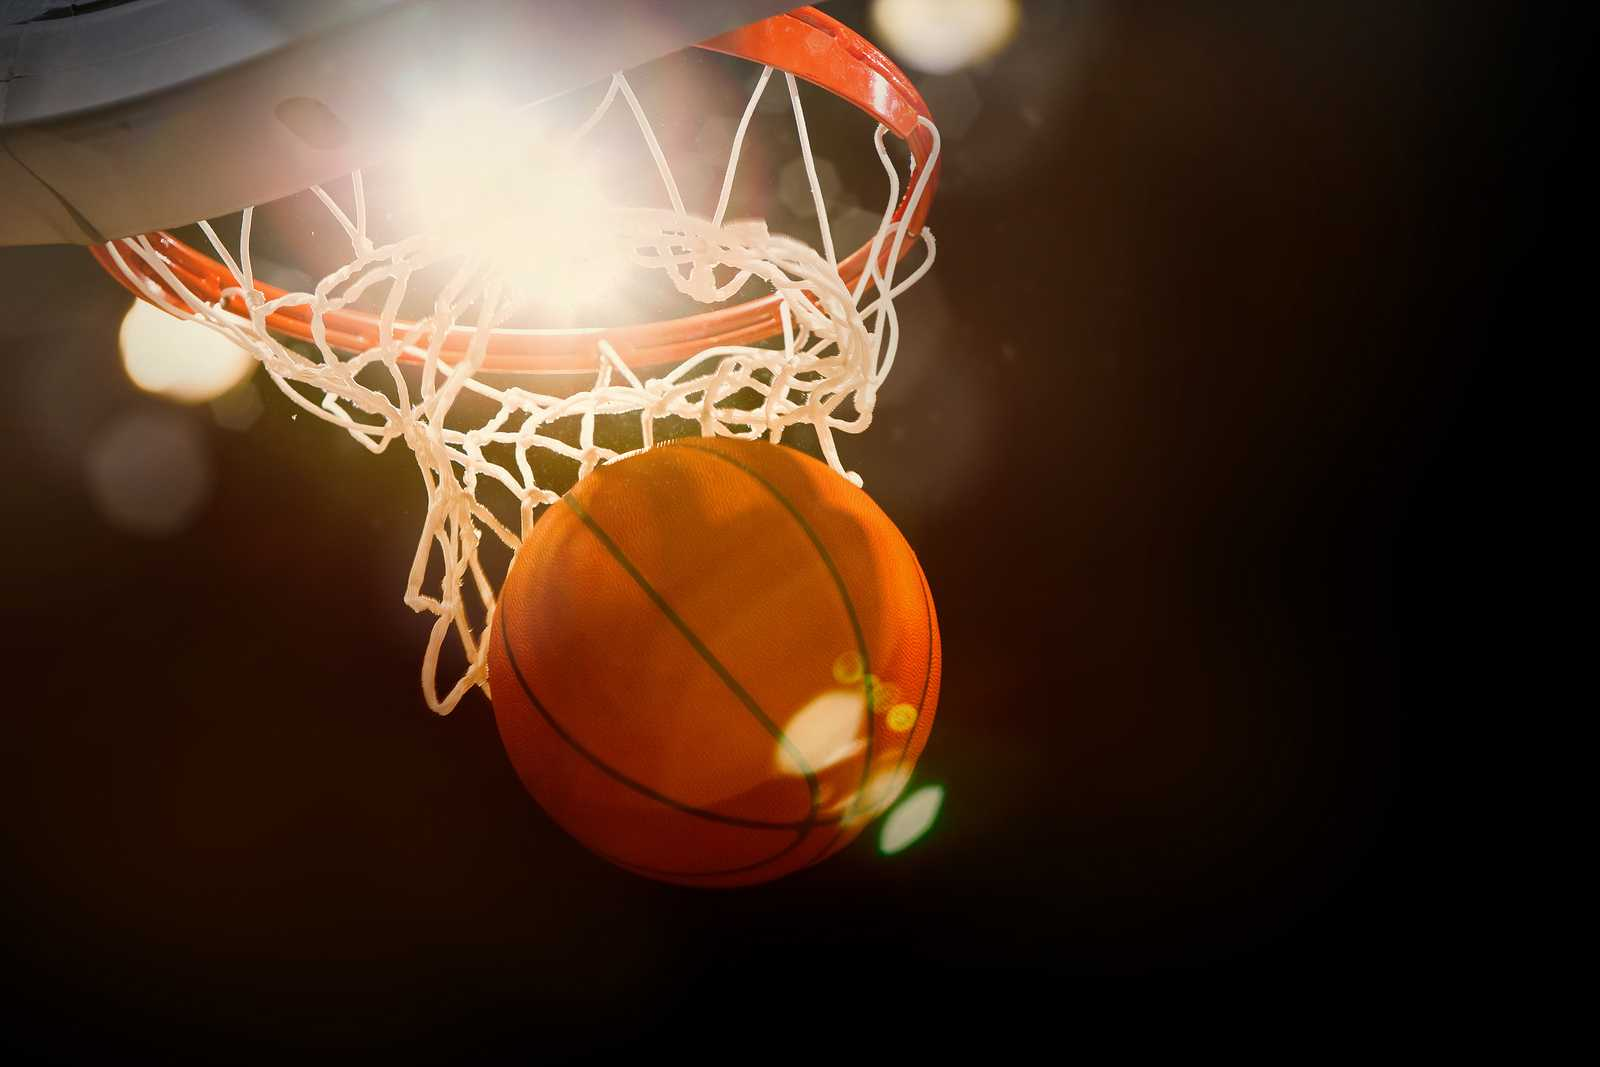 Basketball going through the basket at a sports arena (intention